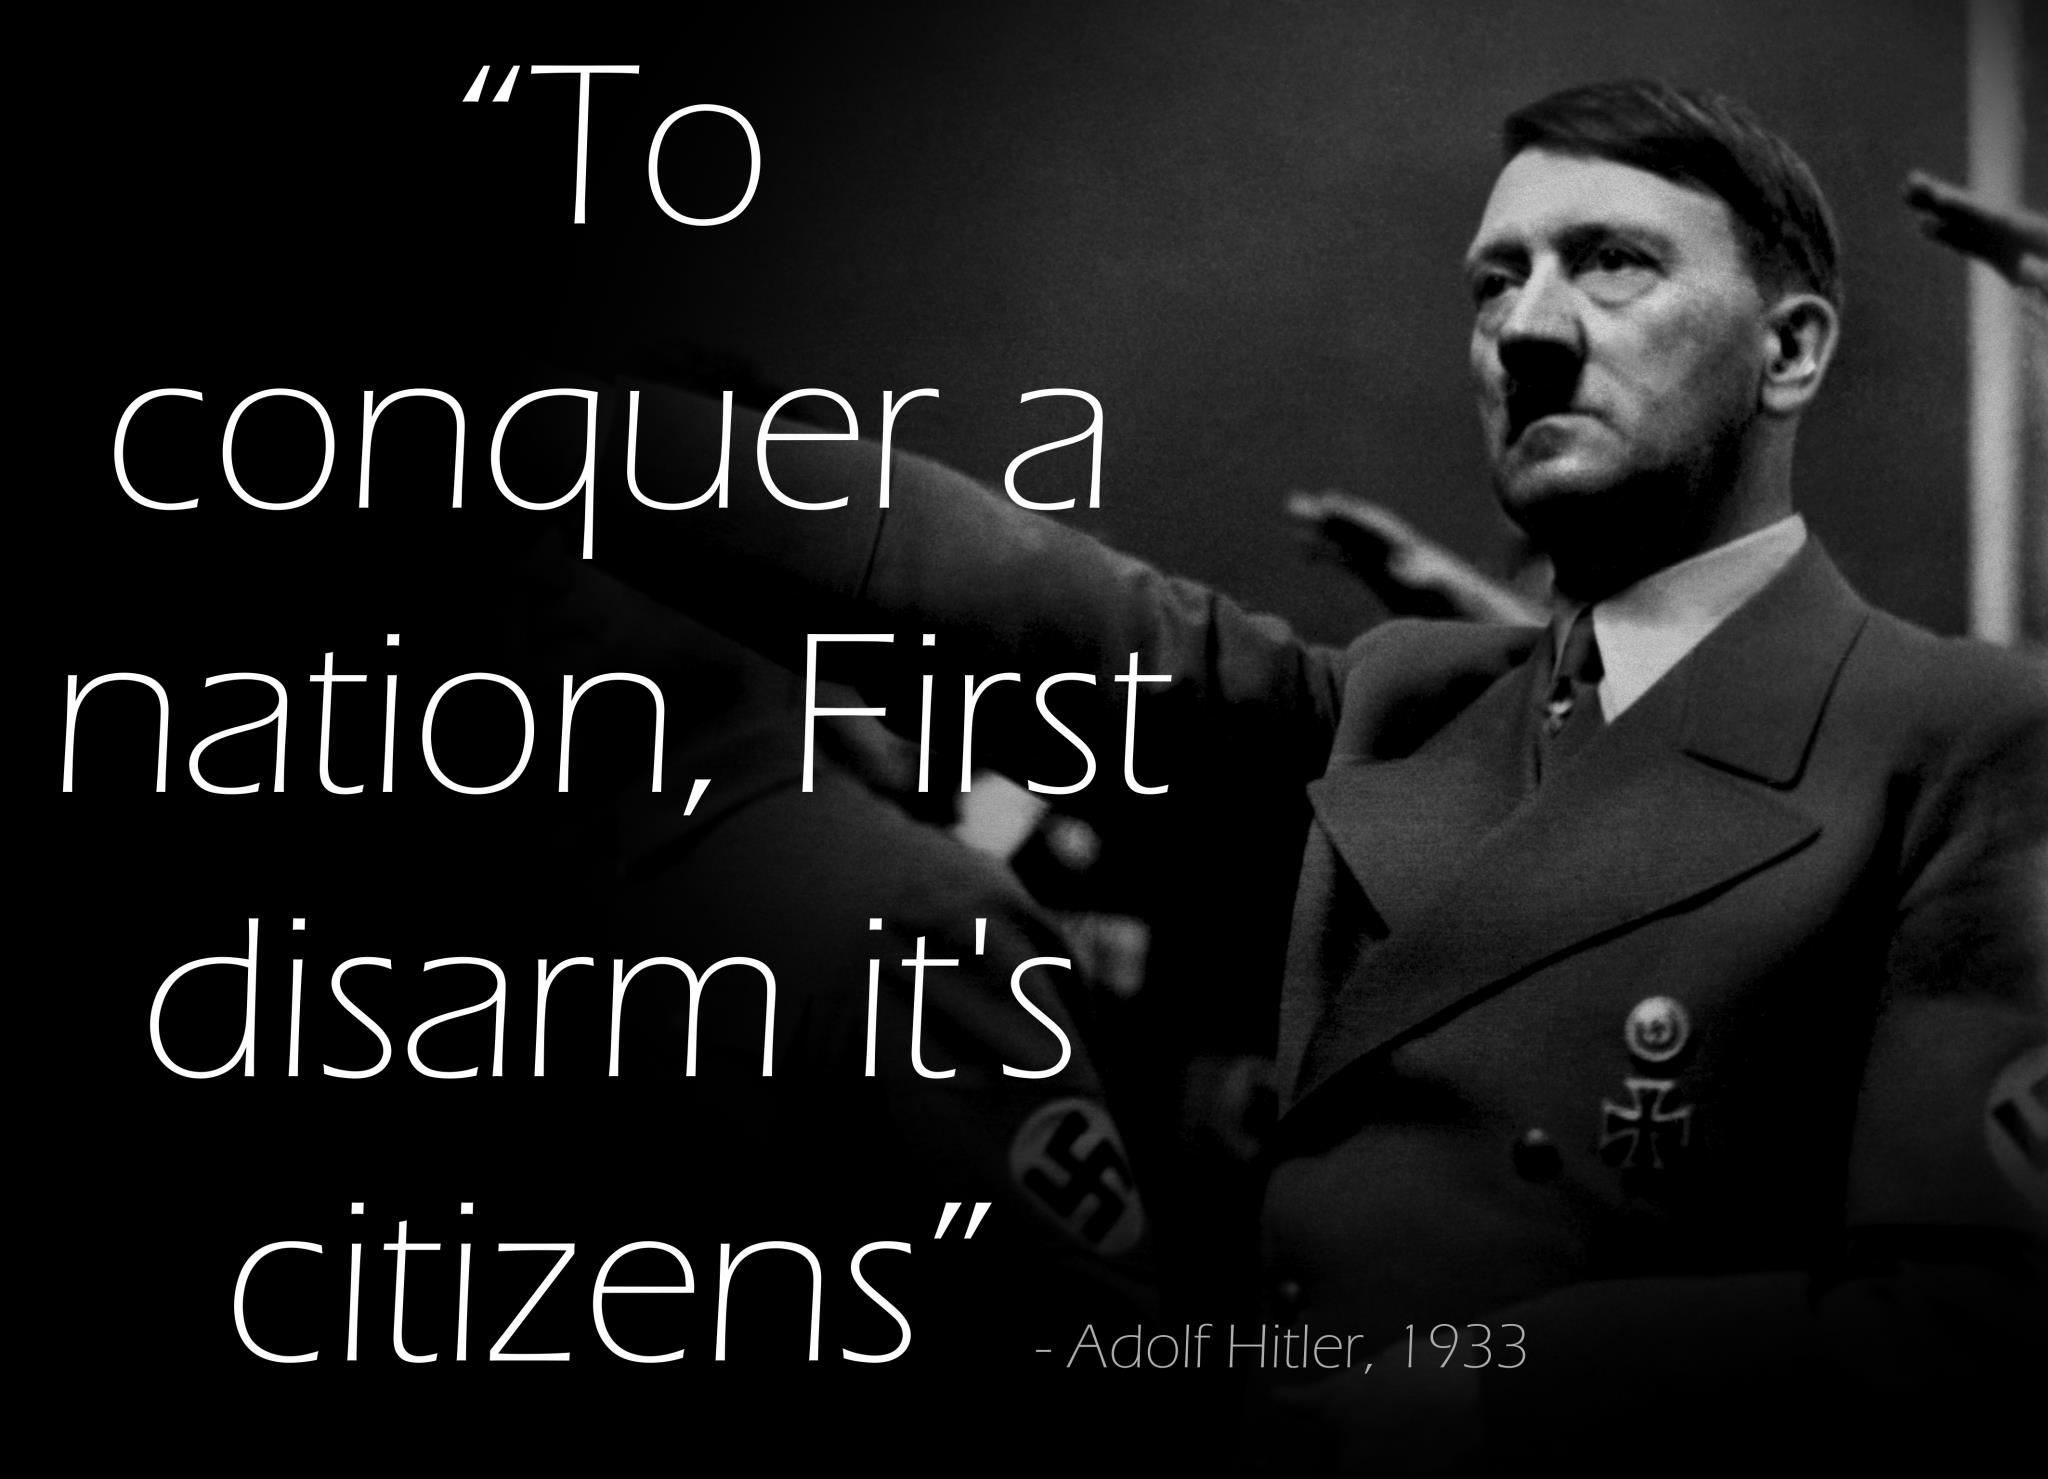 Hitler Disarm Citizens graphic